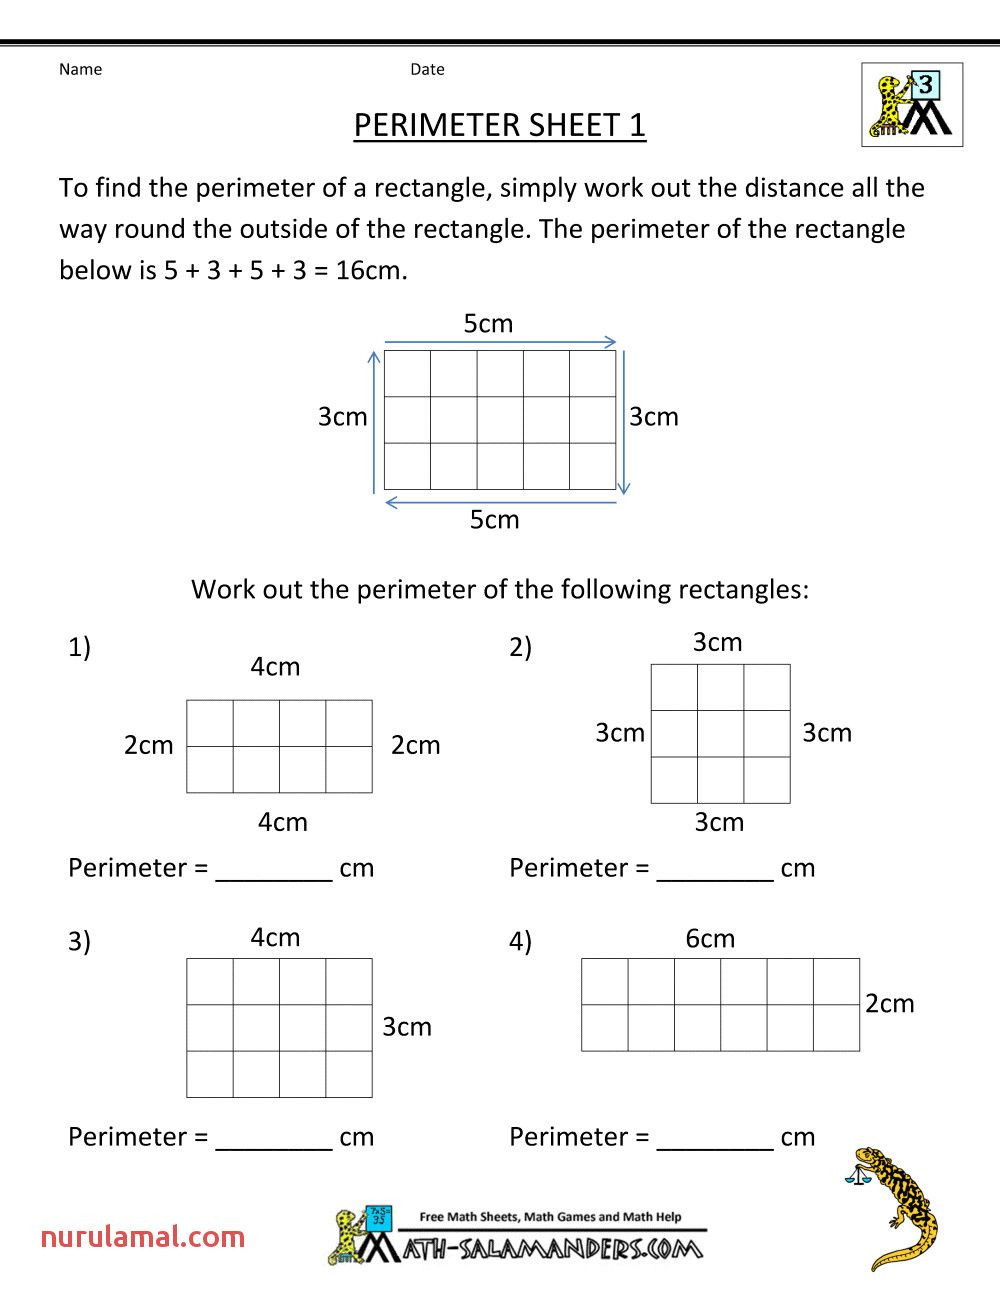 Perimeter Worksheet 3rd Grade Free 3rd Grade Math Worksheets Perimeter 1 In 2020